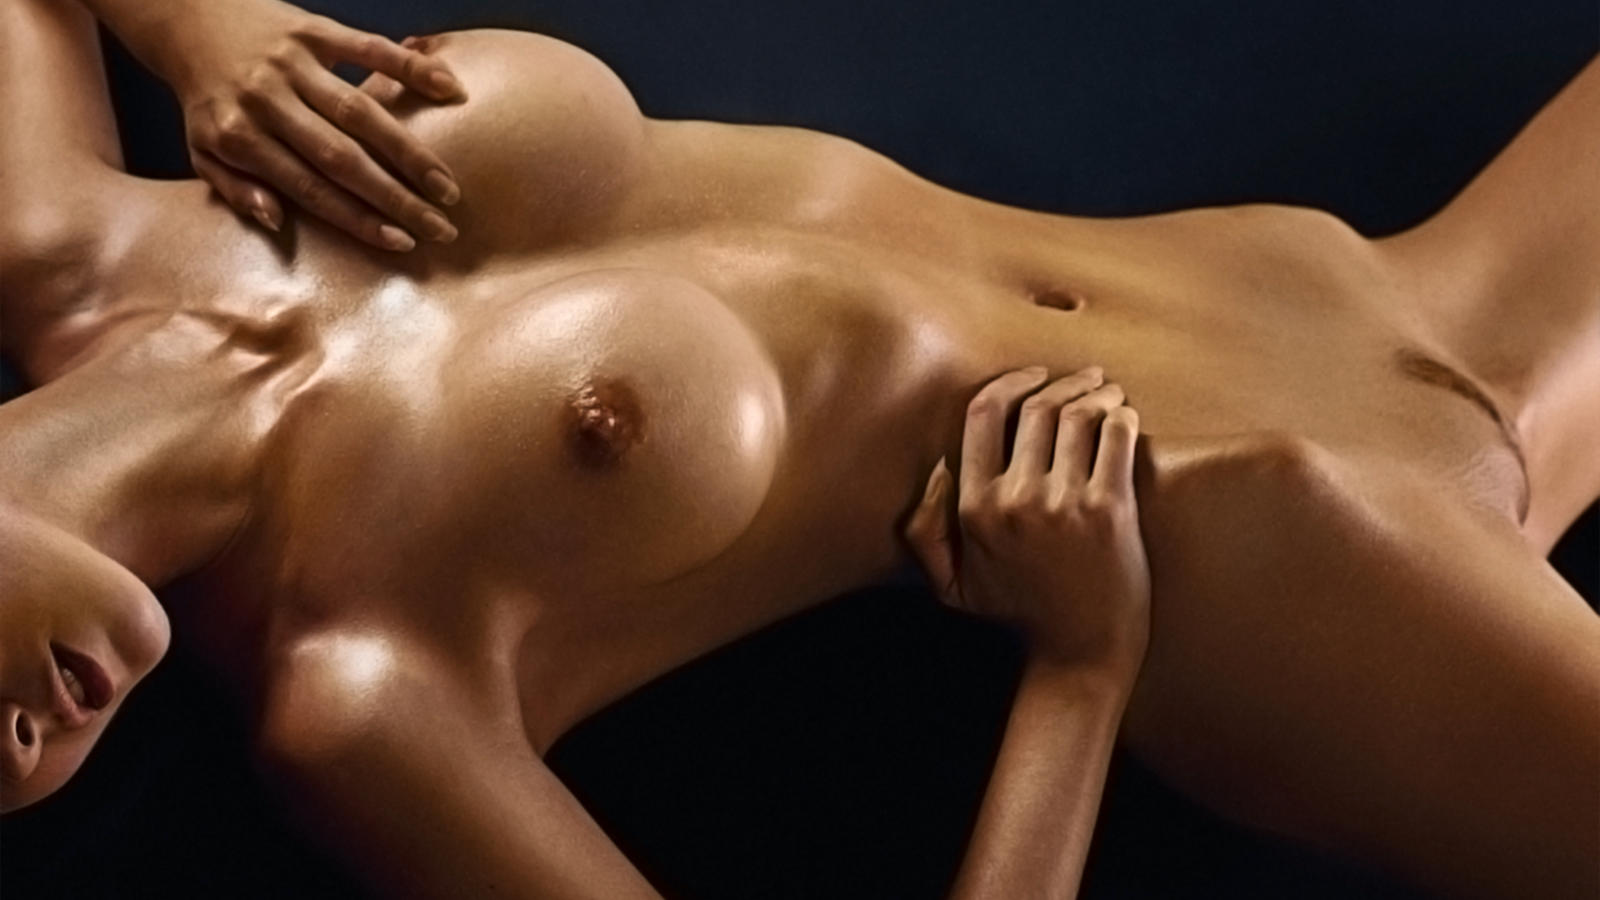 Download Photo 1600X900, Wallpaper, Nude, Perfect Body -7632